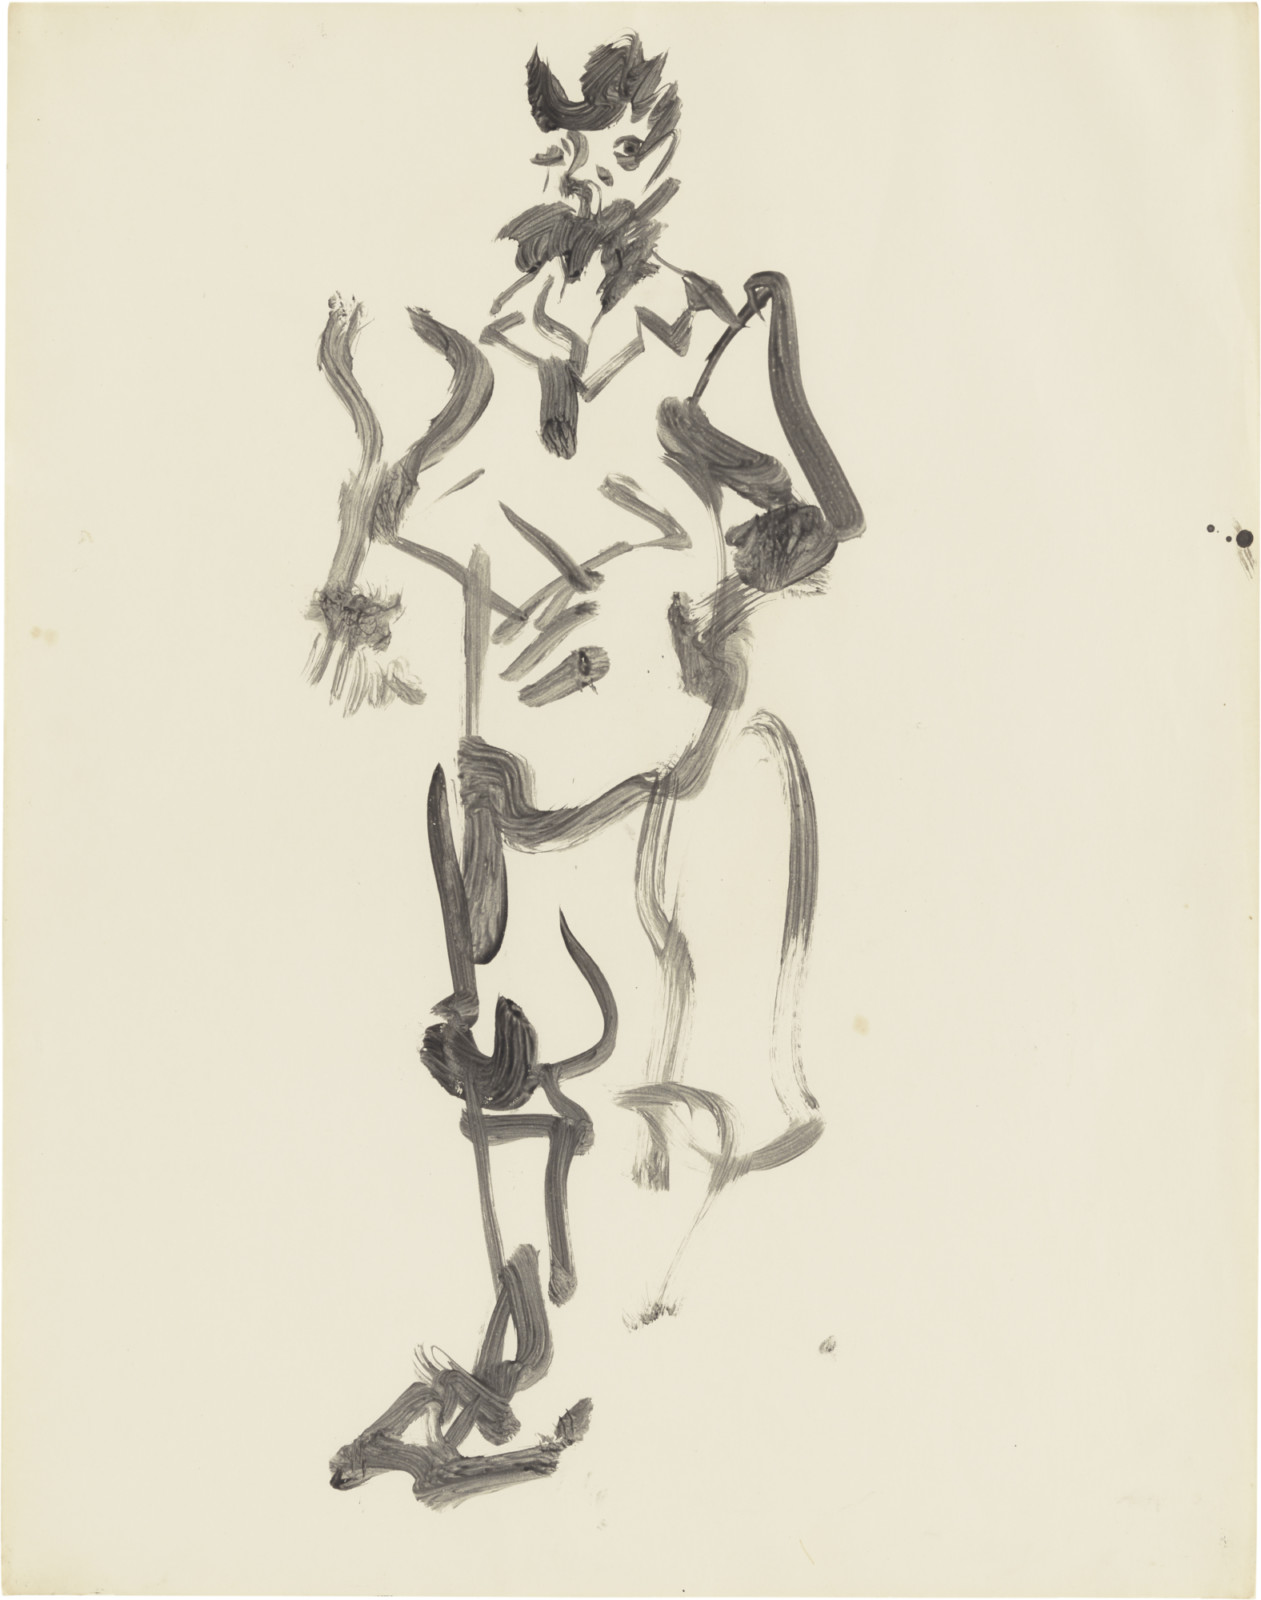 Drawing, dated 1964